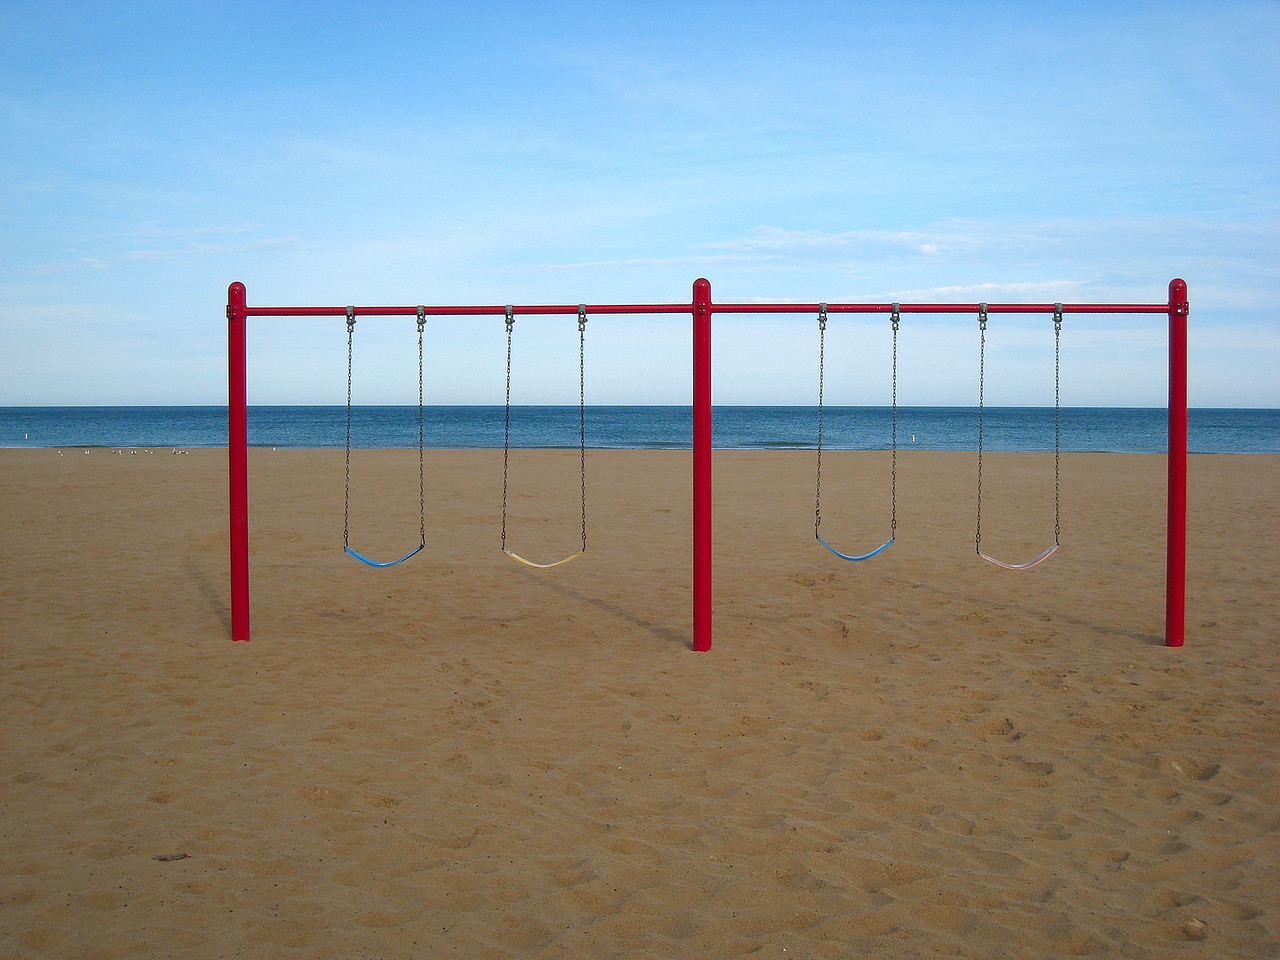 The swingset at the beach in South Haven Michigan in the early morning.